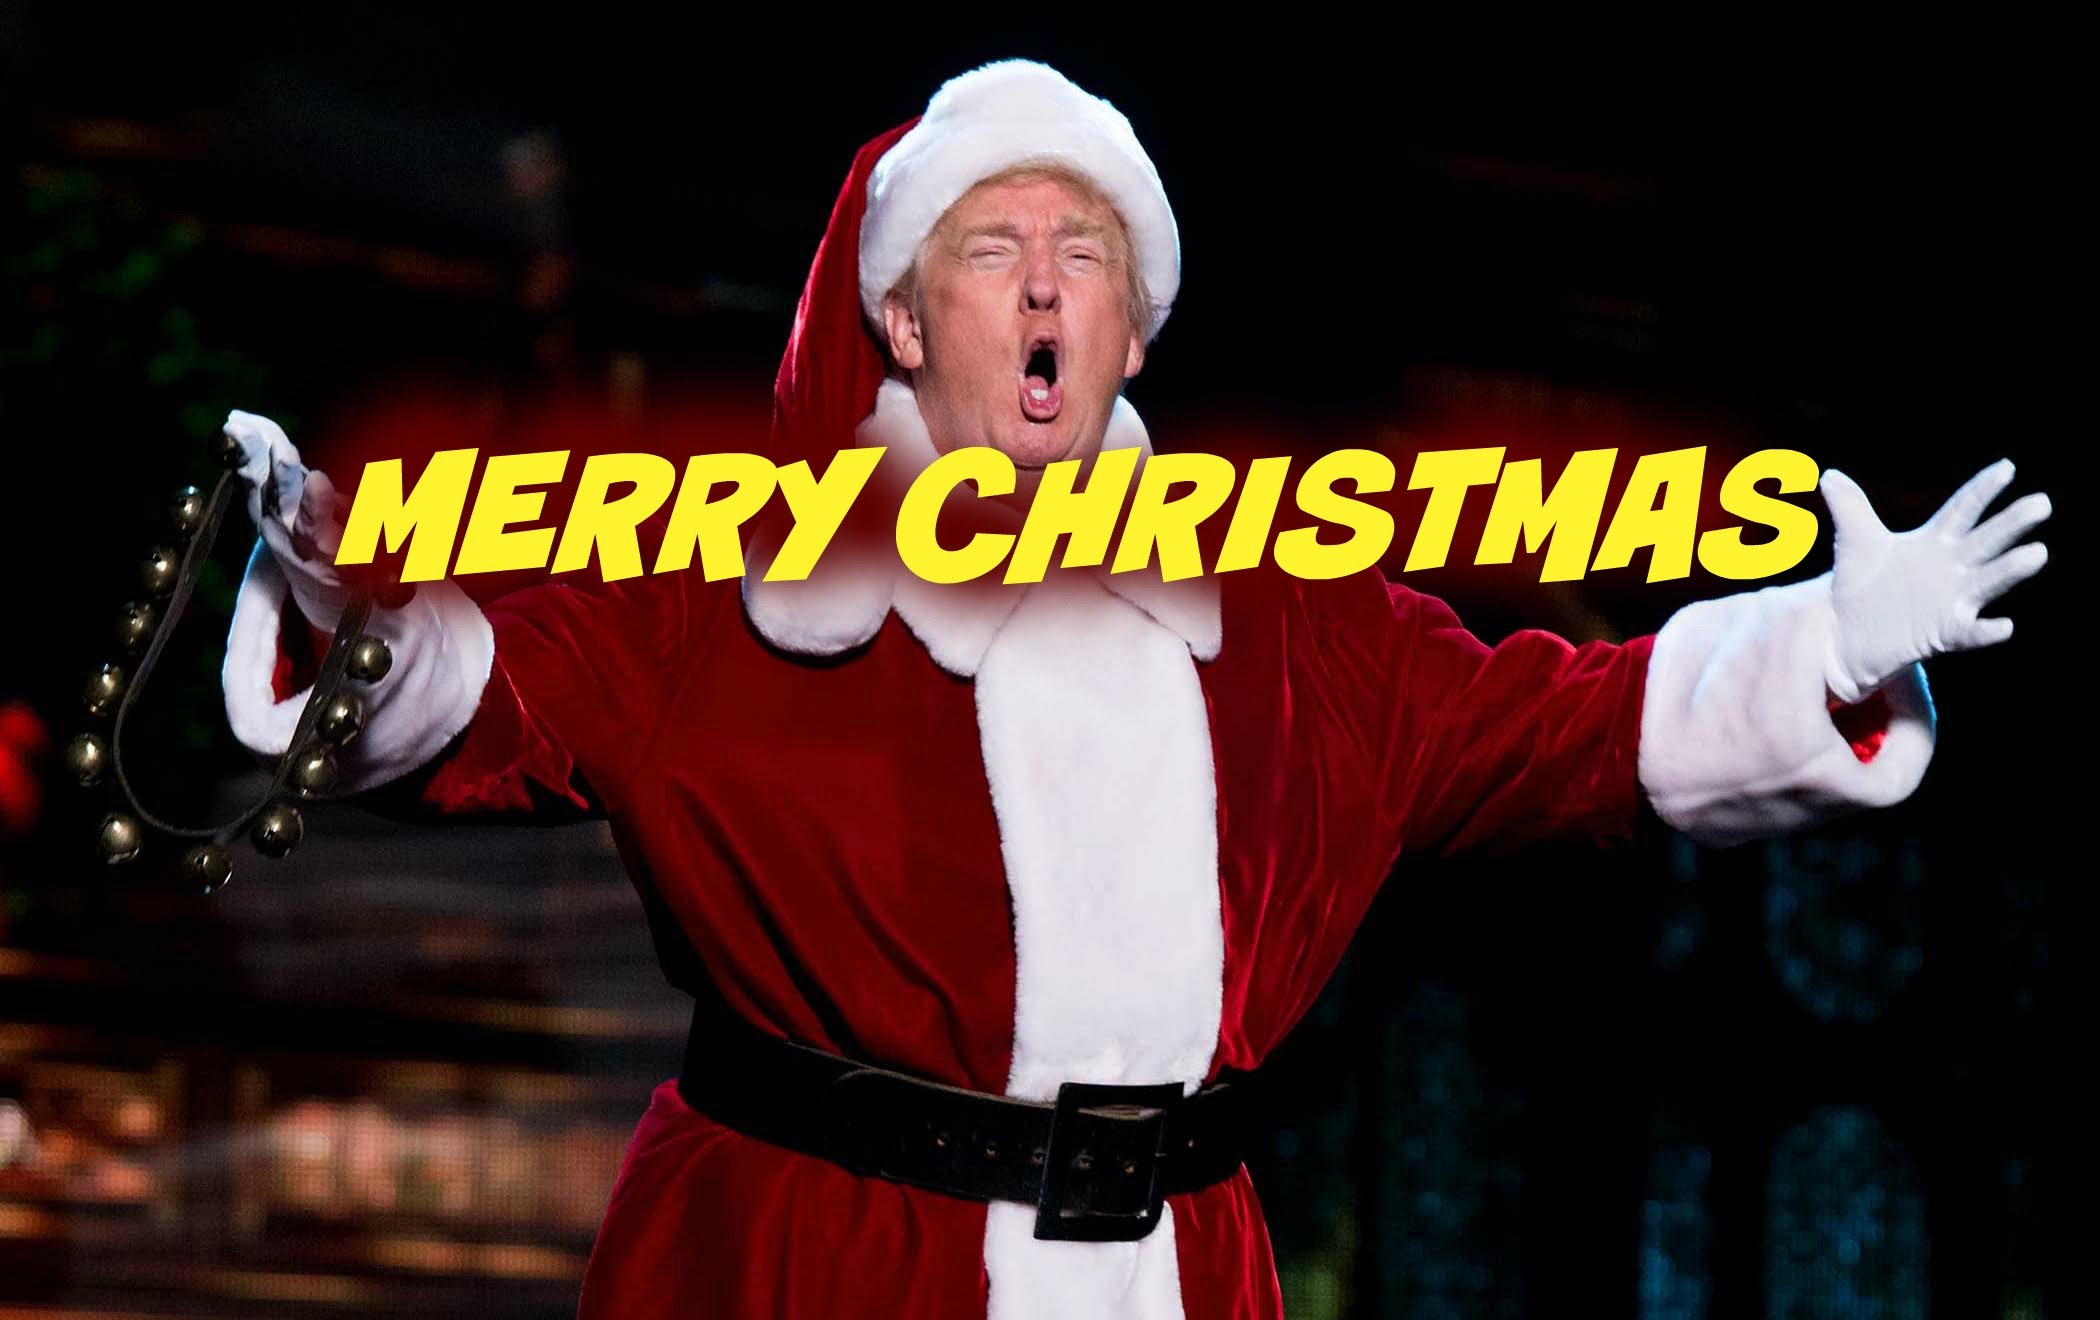 To ALL AMERICANS:Feel free to say Christmas party,Christmas vacationand especially Merry Christmas!